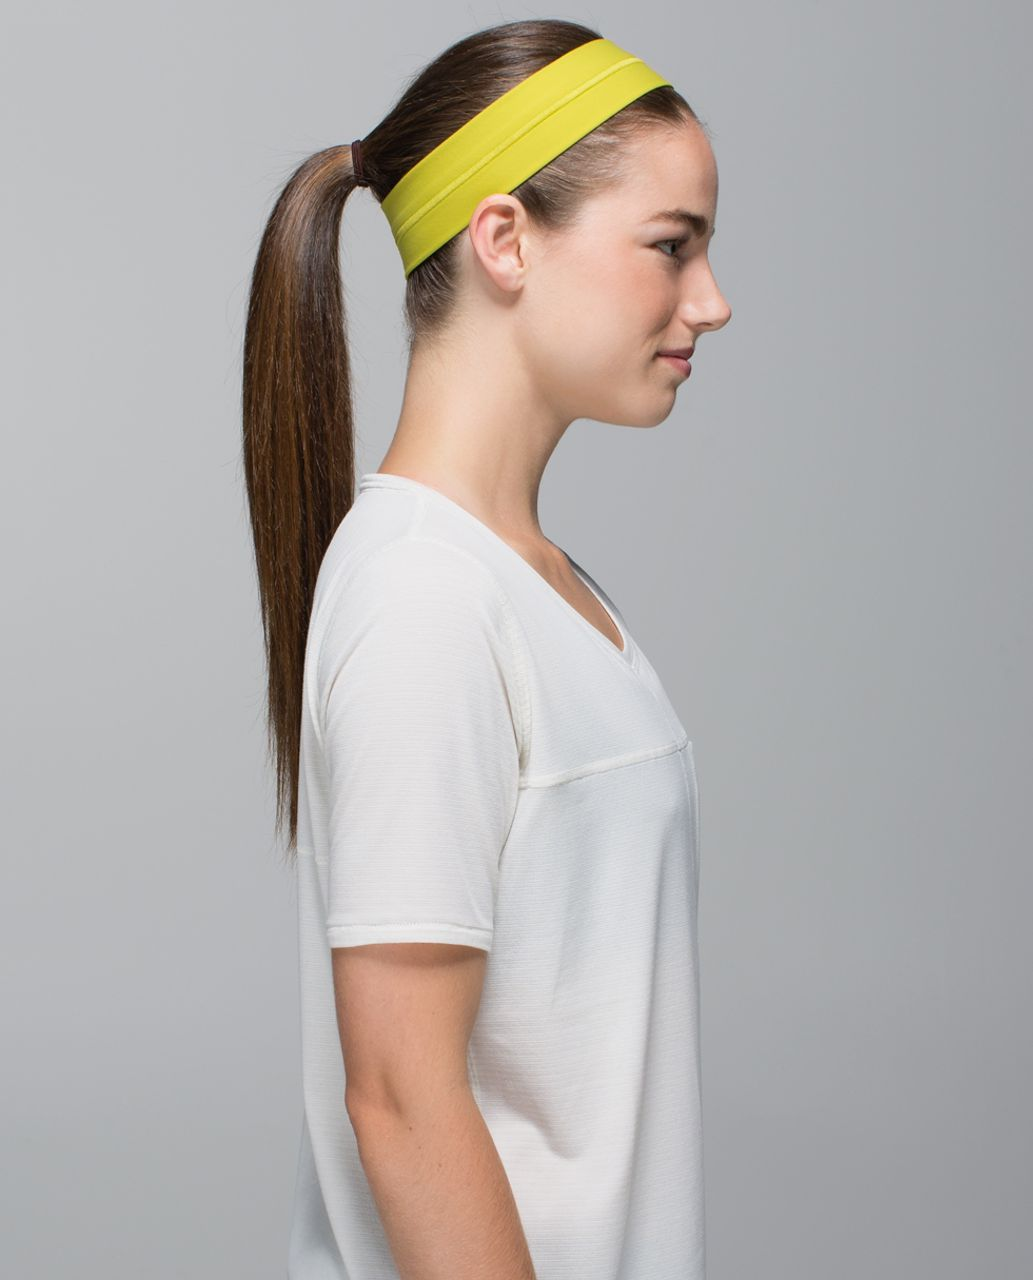 Lululemon Fly Away Tamer Headband - Almost Pear